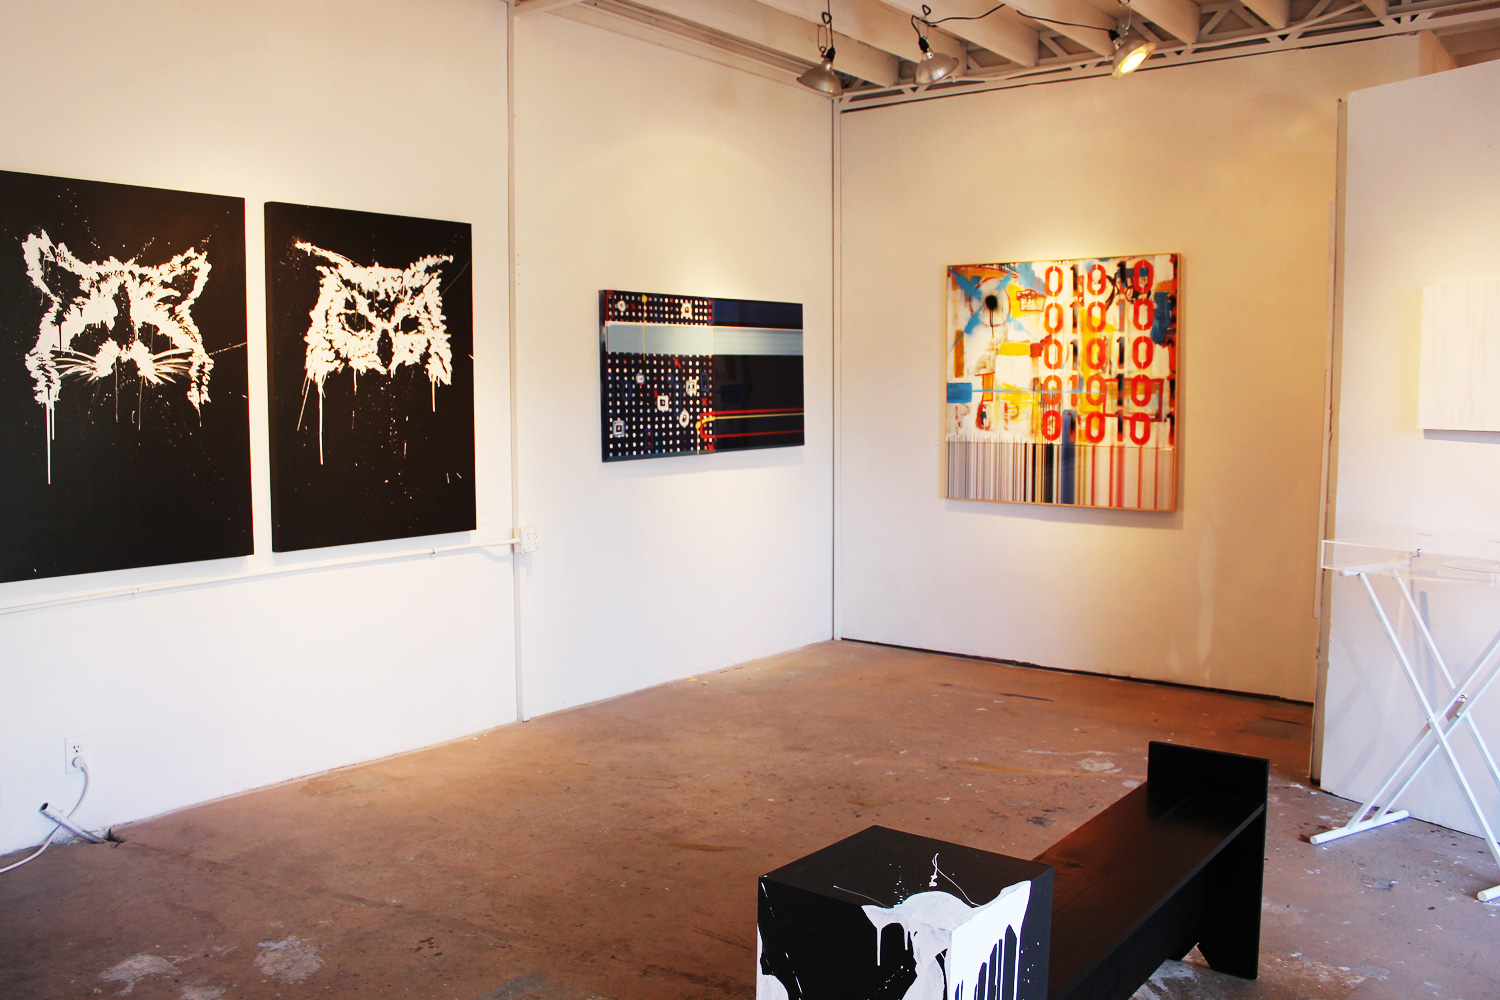 WNDO is equal parts gallery and event space. It's constantly changing, says Bisco Smith.